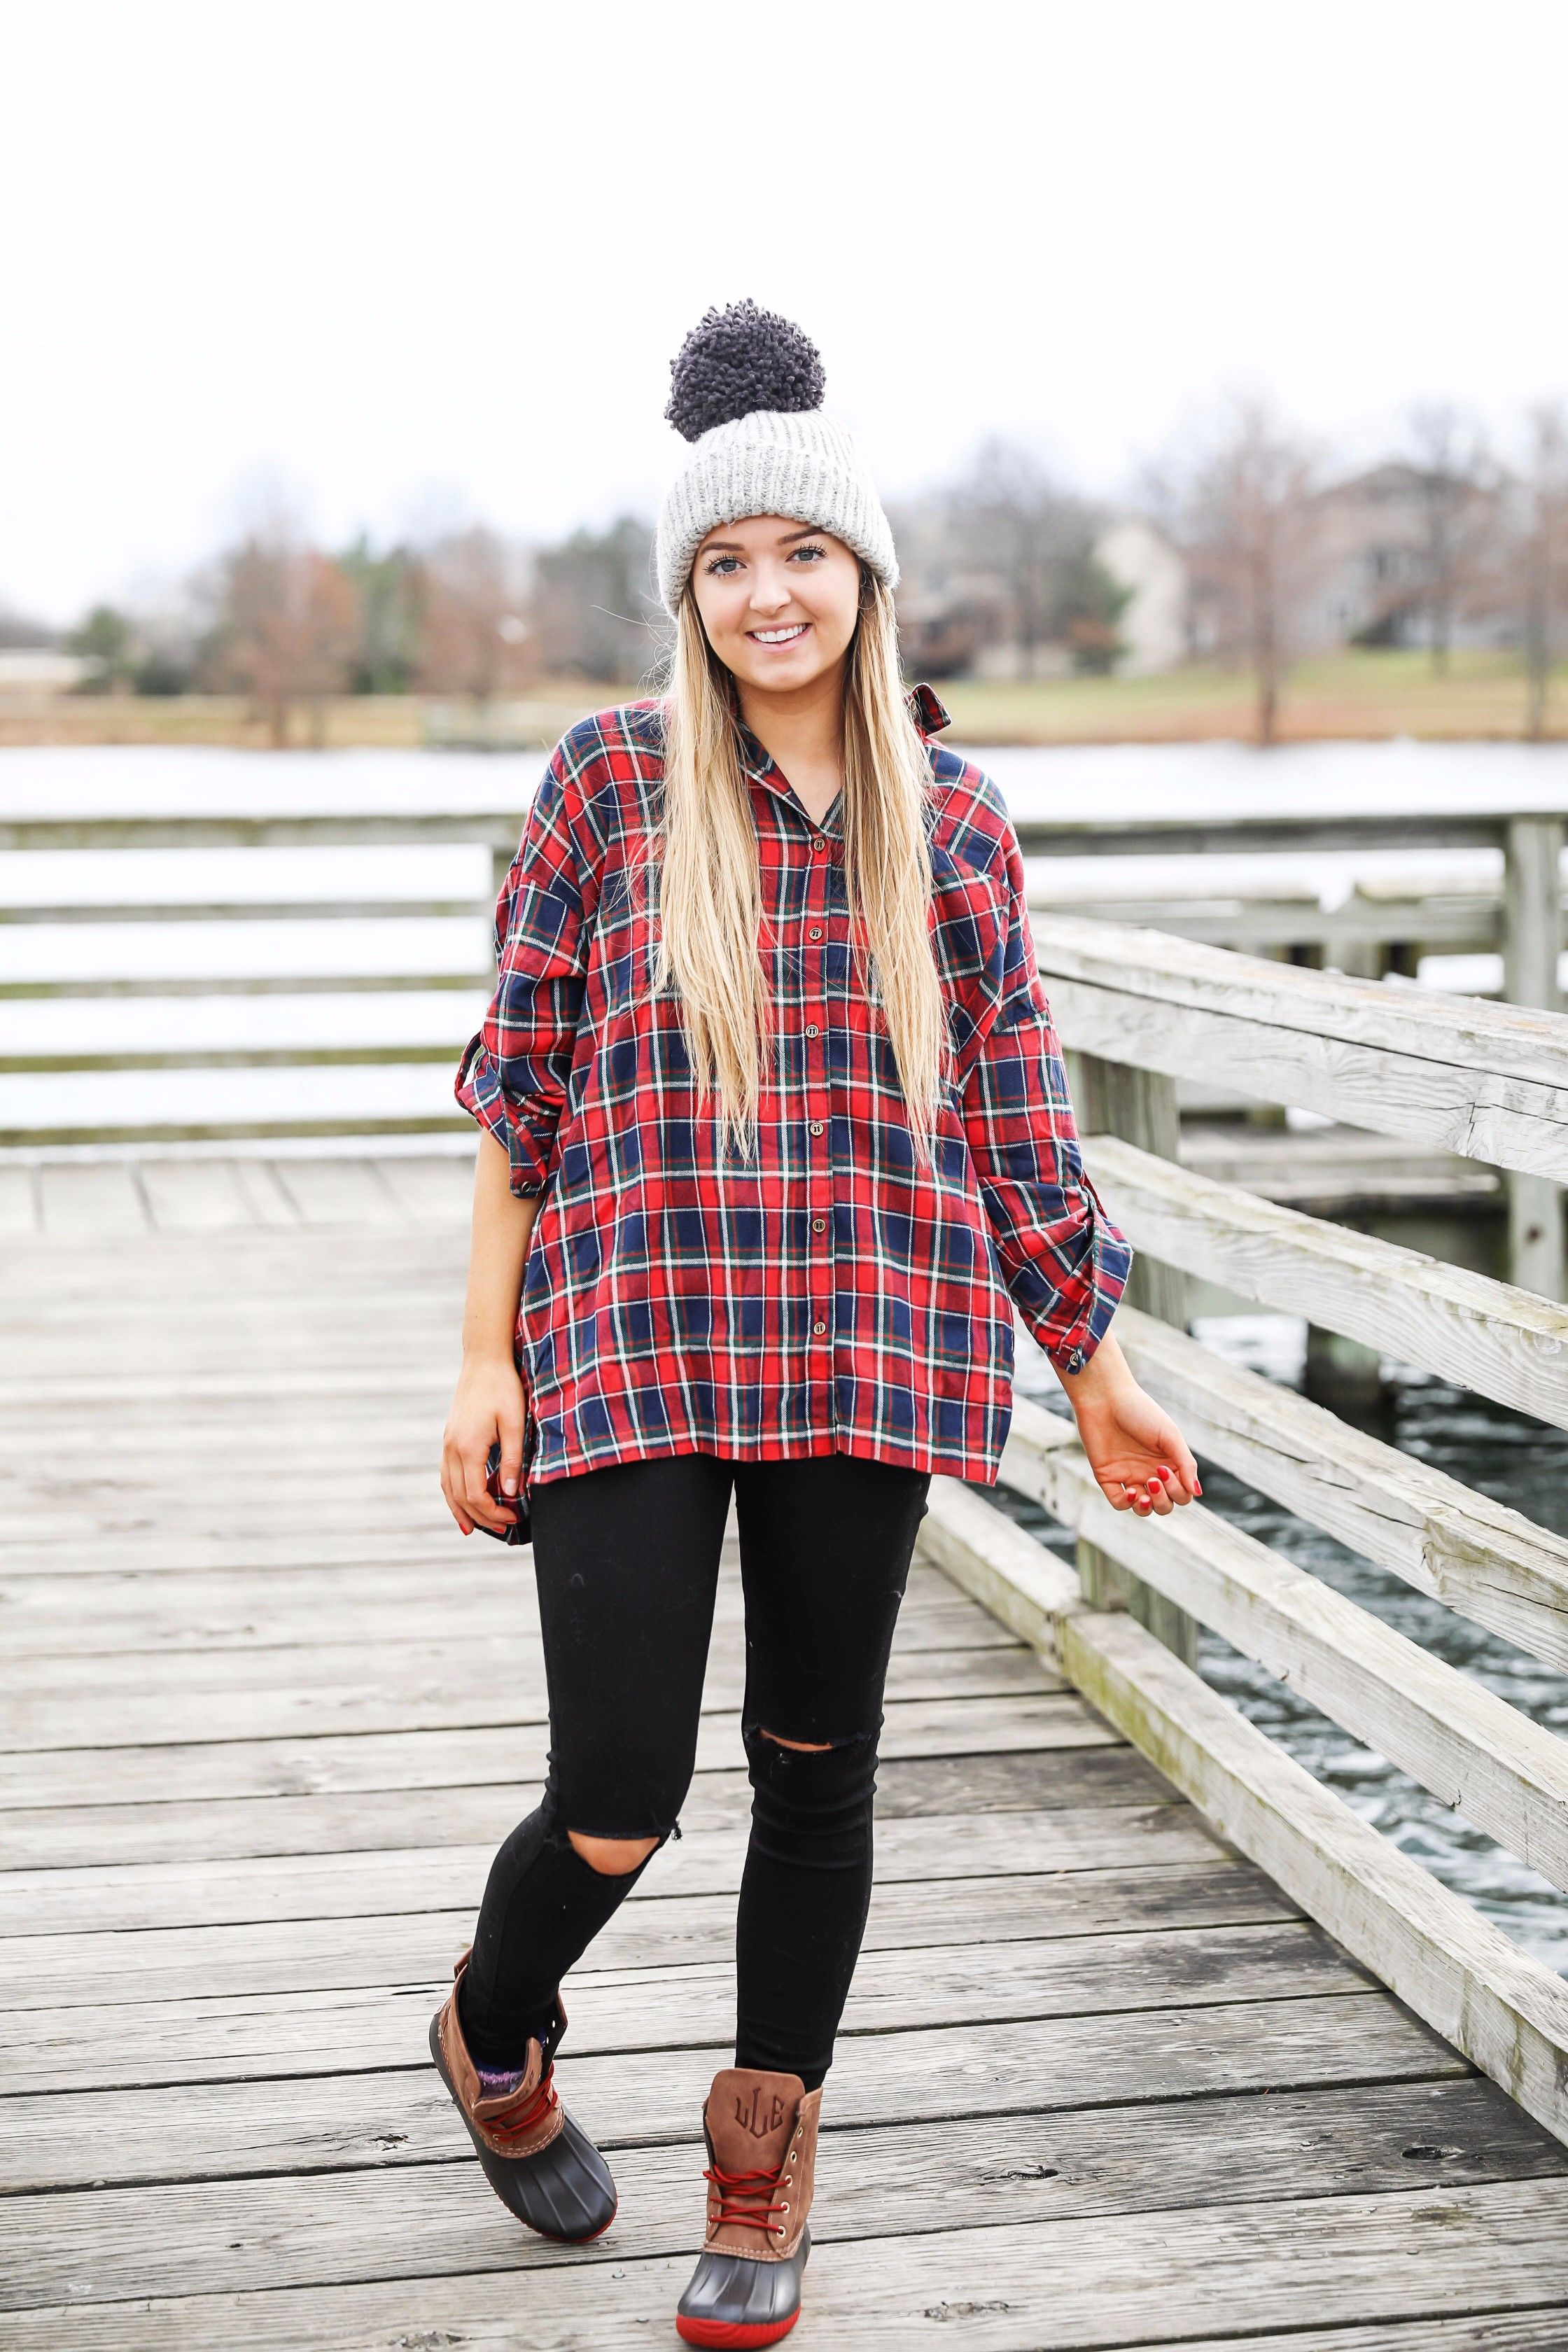 Cute flannel outfit with beanie and monogramed duck boots! Cute fall and  winter camping outfit idea! Details on the fashion blog daily dose of charm  by ... 97d1f135a3b